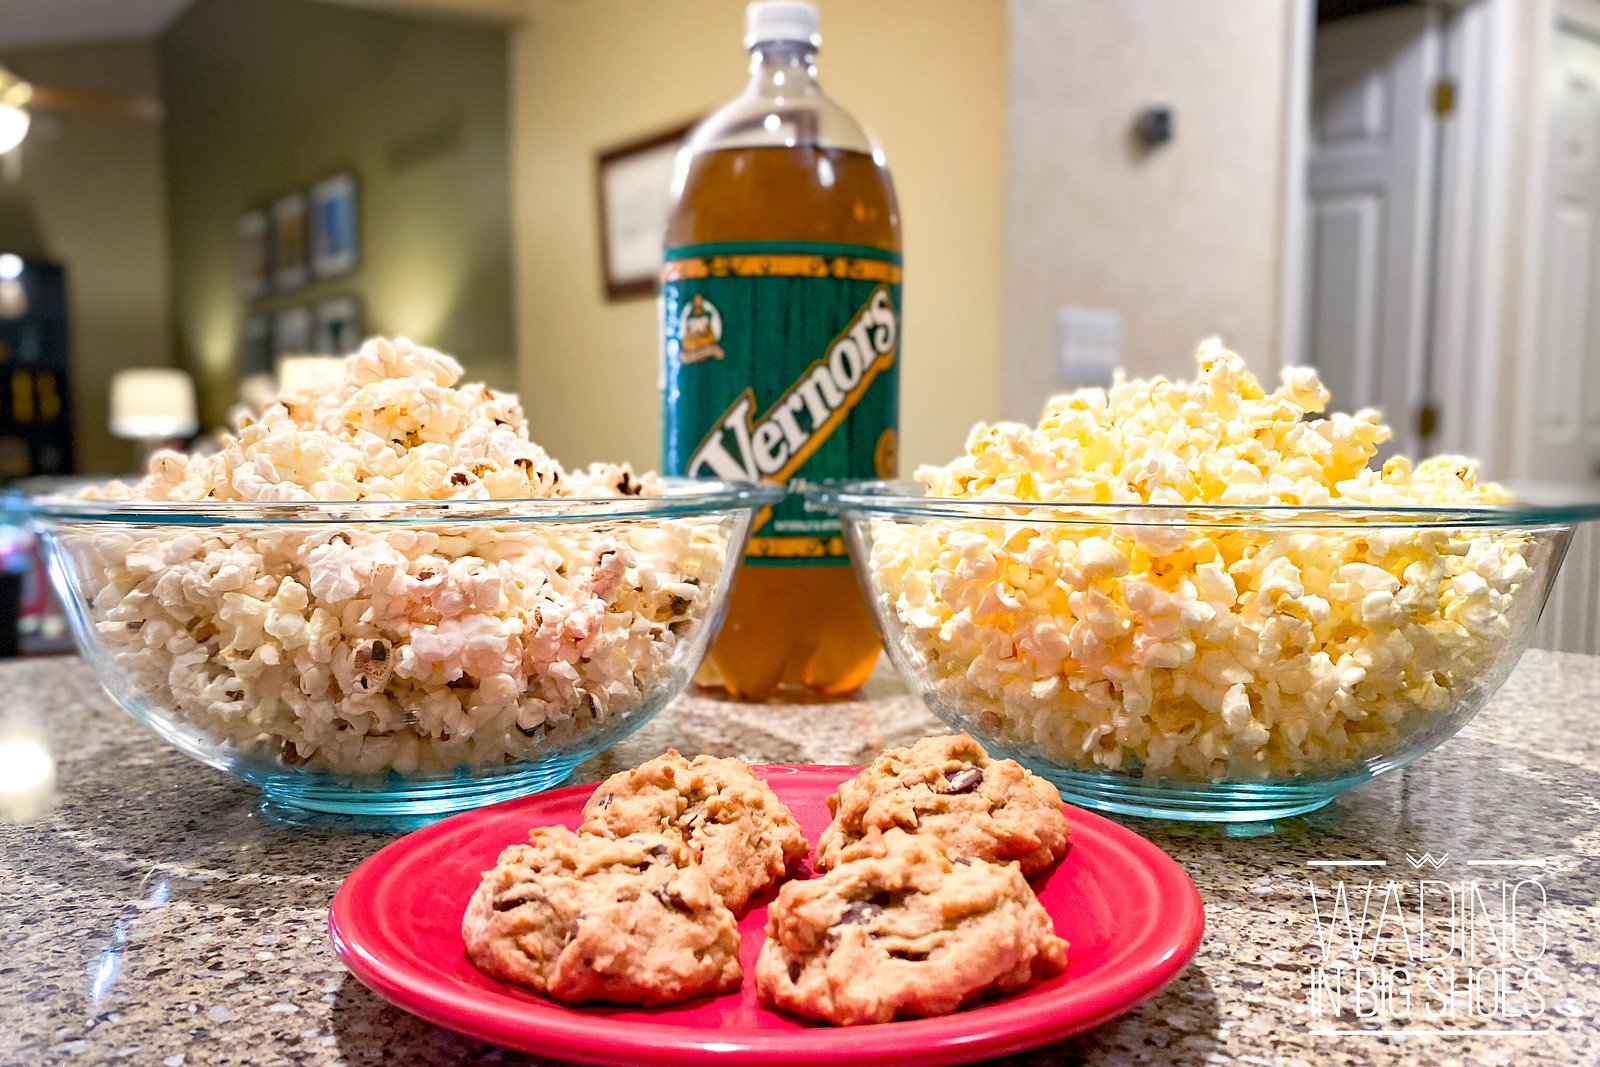 Wading in Big Shoes - Best Classic Movies & Snacks For A Redford Theatre-Inspired Watch Party